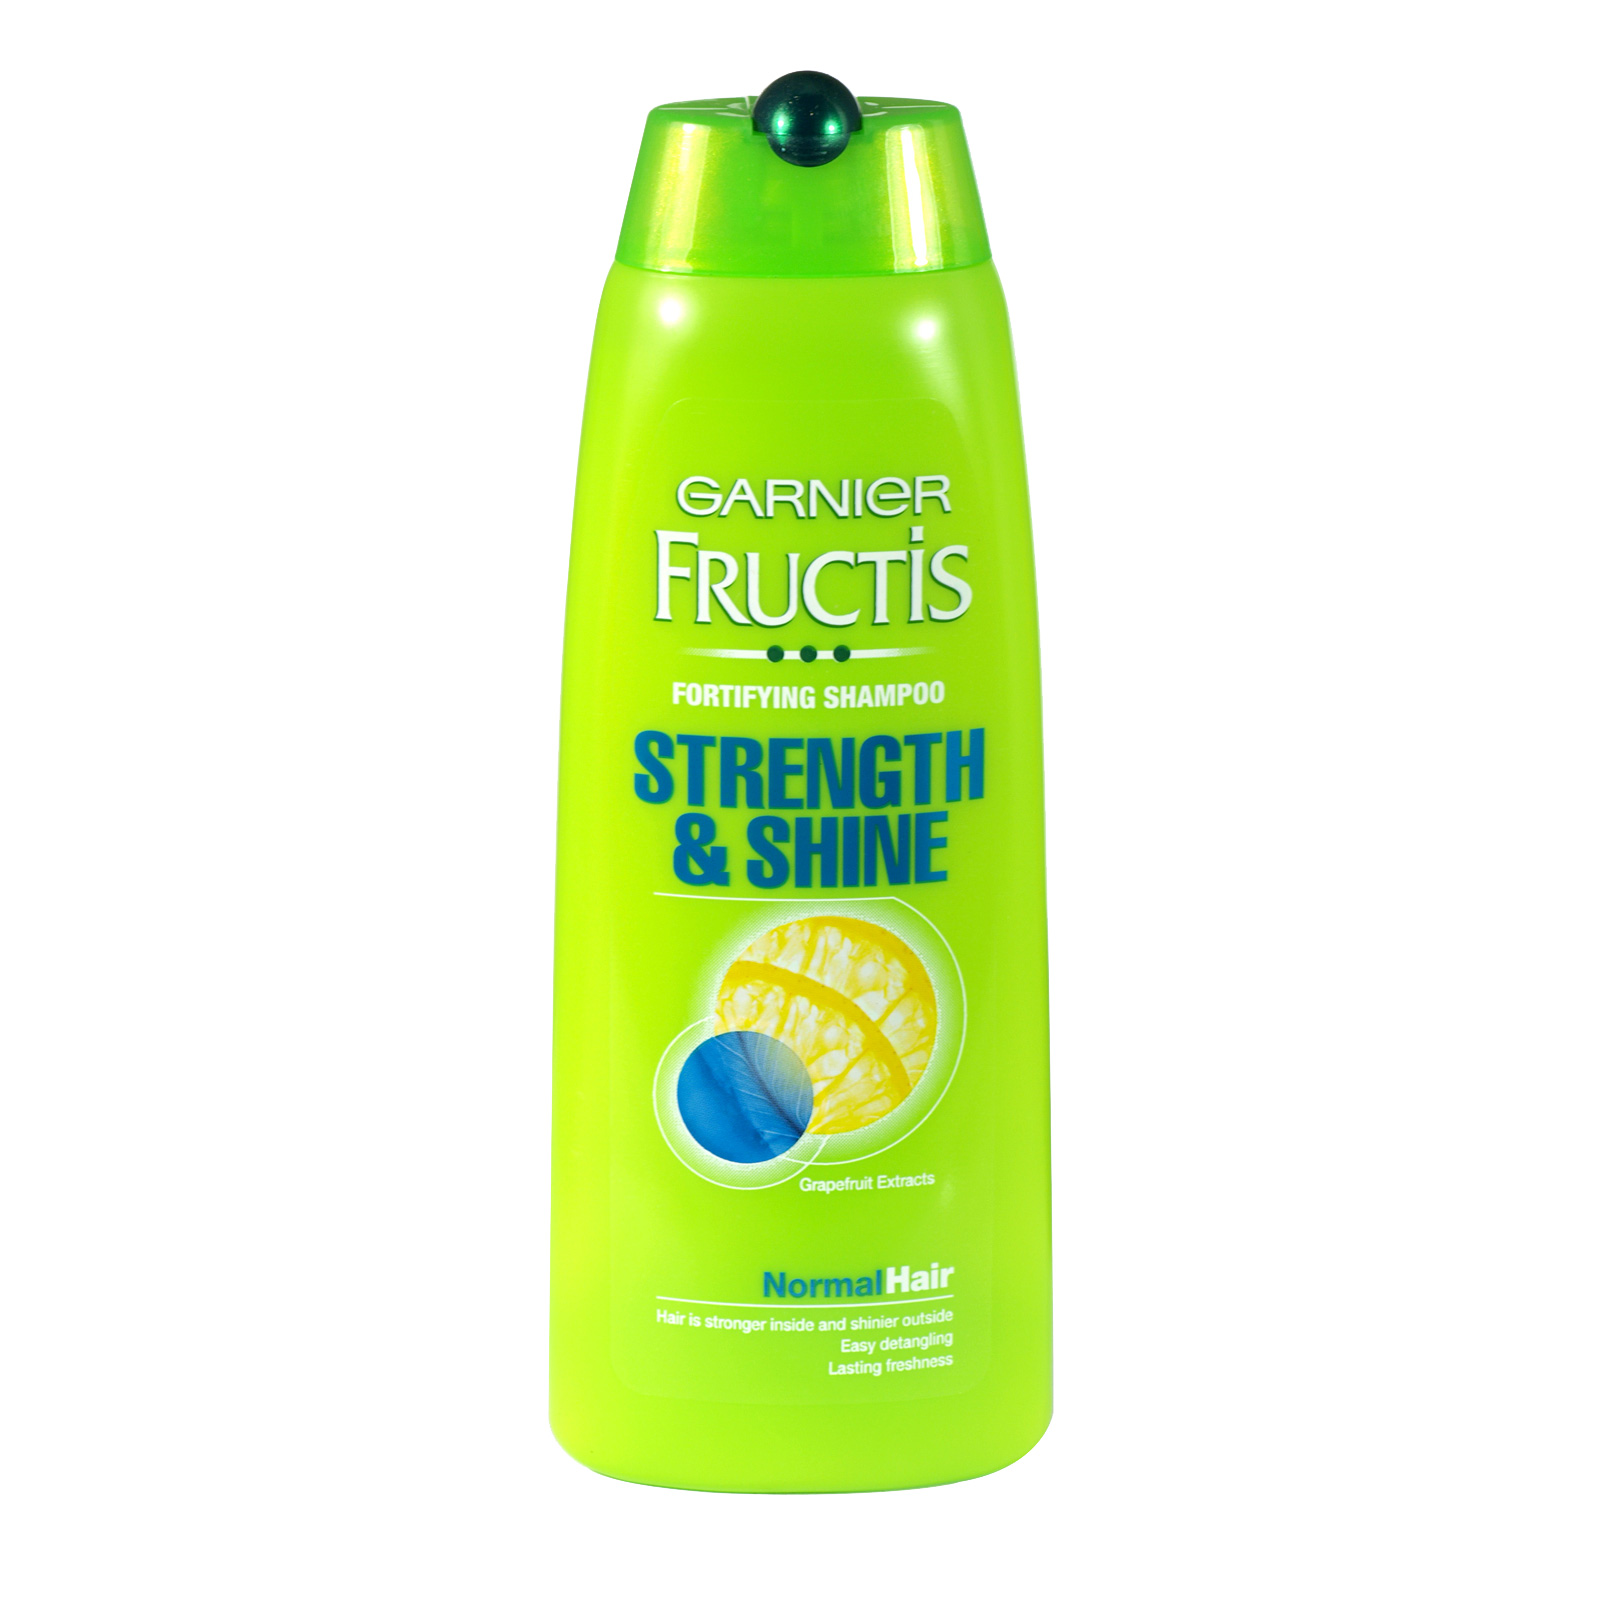 GARNIER FRUCTIS SHAMPOO 250ML STRENGTH+SHINE NORMAL X6